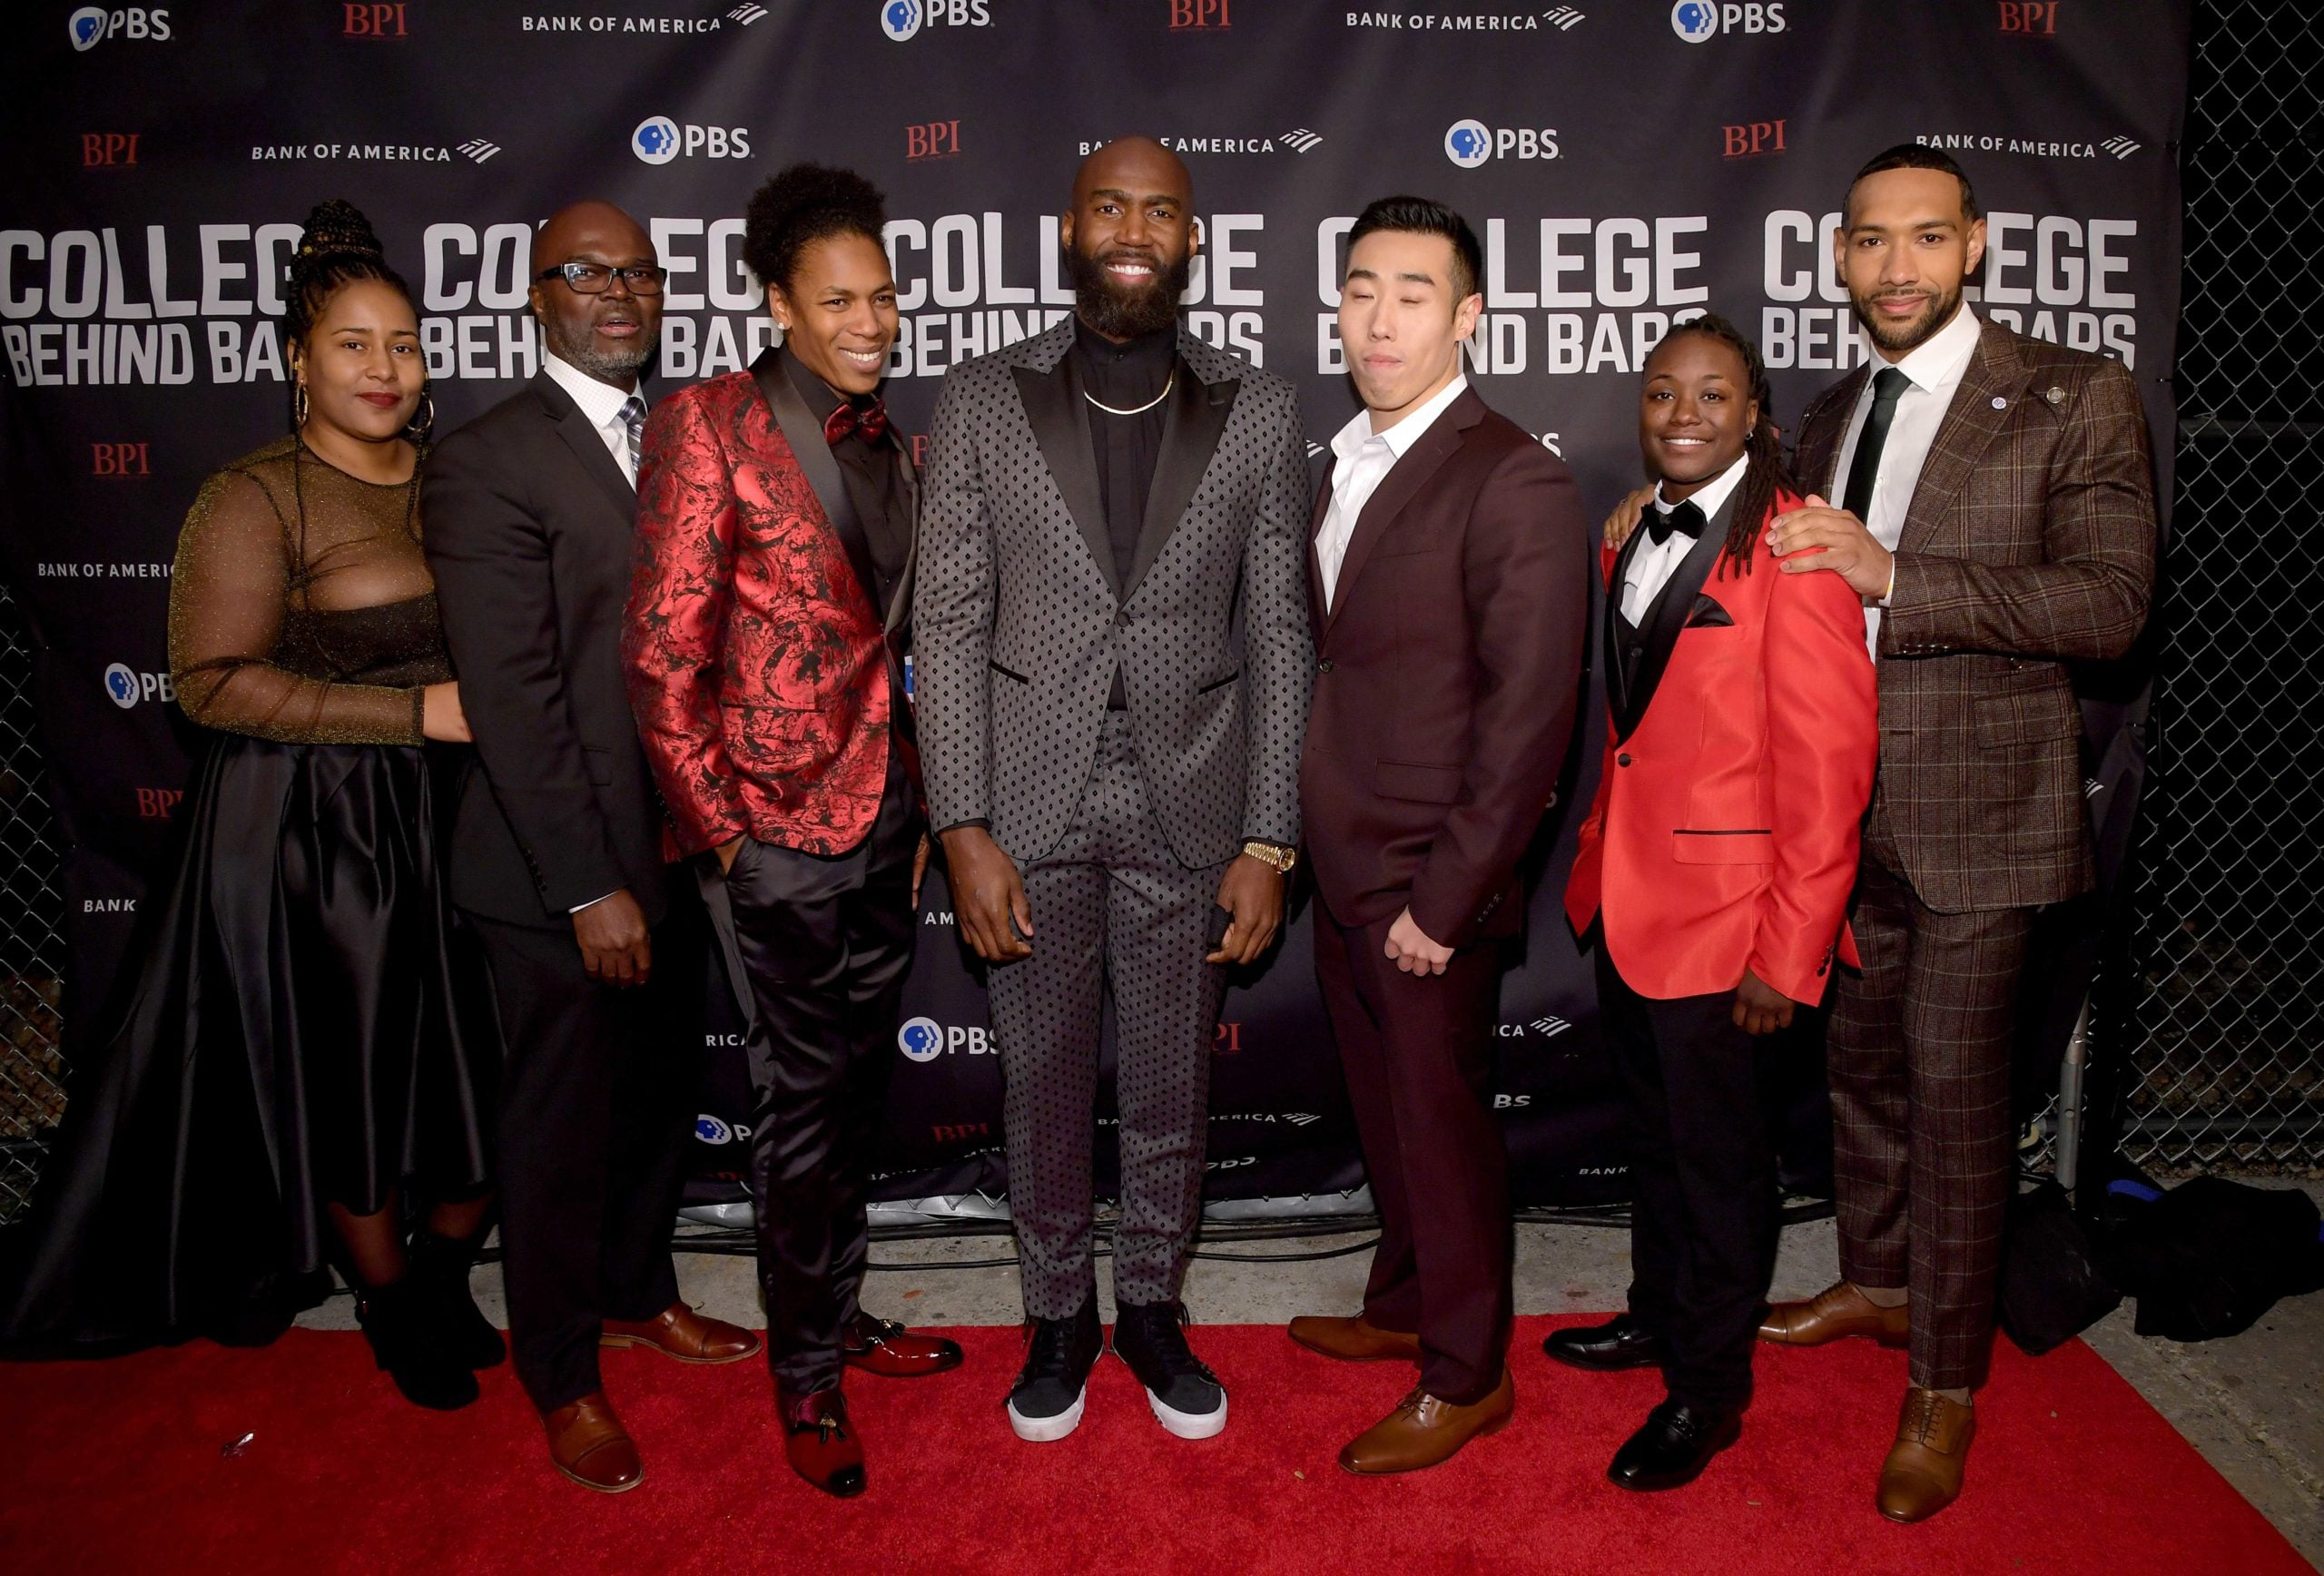 Shawnta Montgomery, Wesley Caines, Tamika Graham, Malcolm Jenkins, Sebastian Yoon, Tamara Barley and Dyjuan Tatro attend the special screening of COLLEGE BEHIND BARS at The Apollo Theater on November 12, 2019 in New York City.